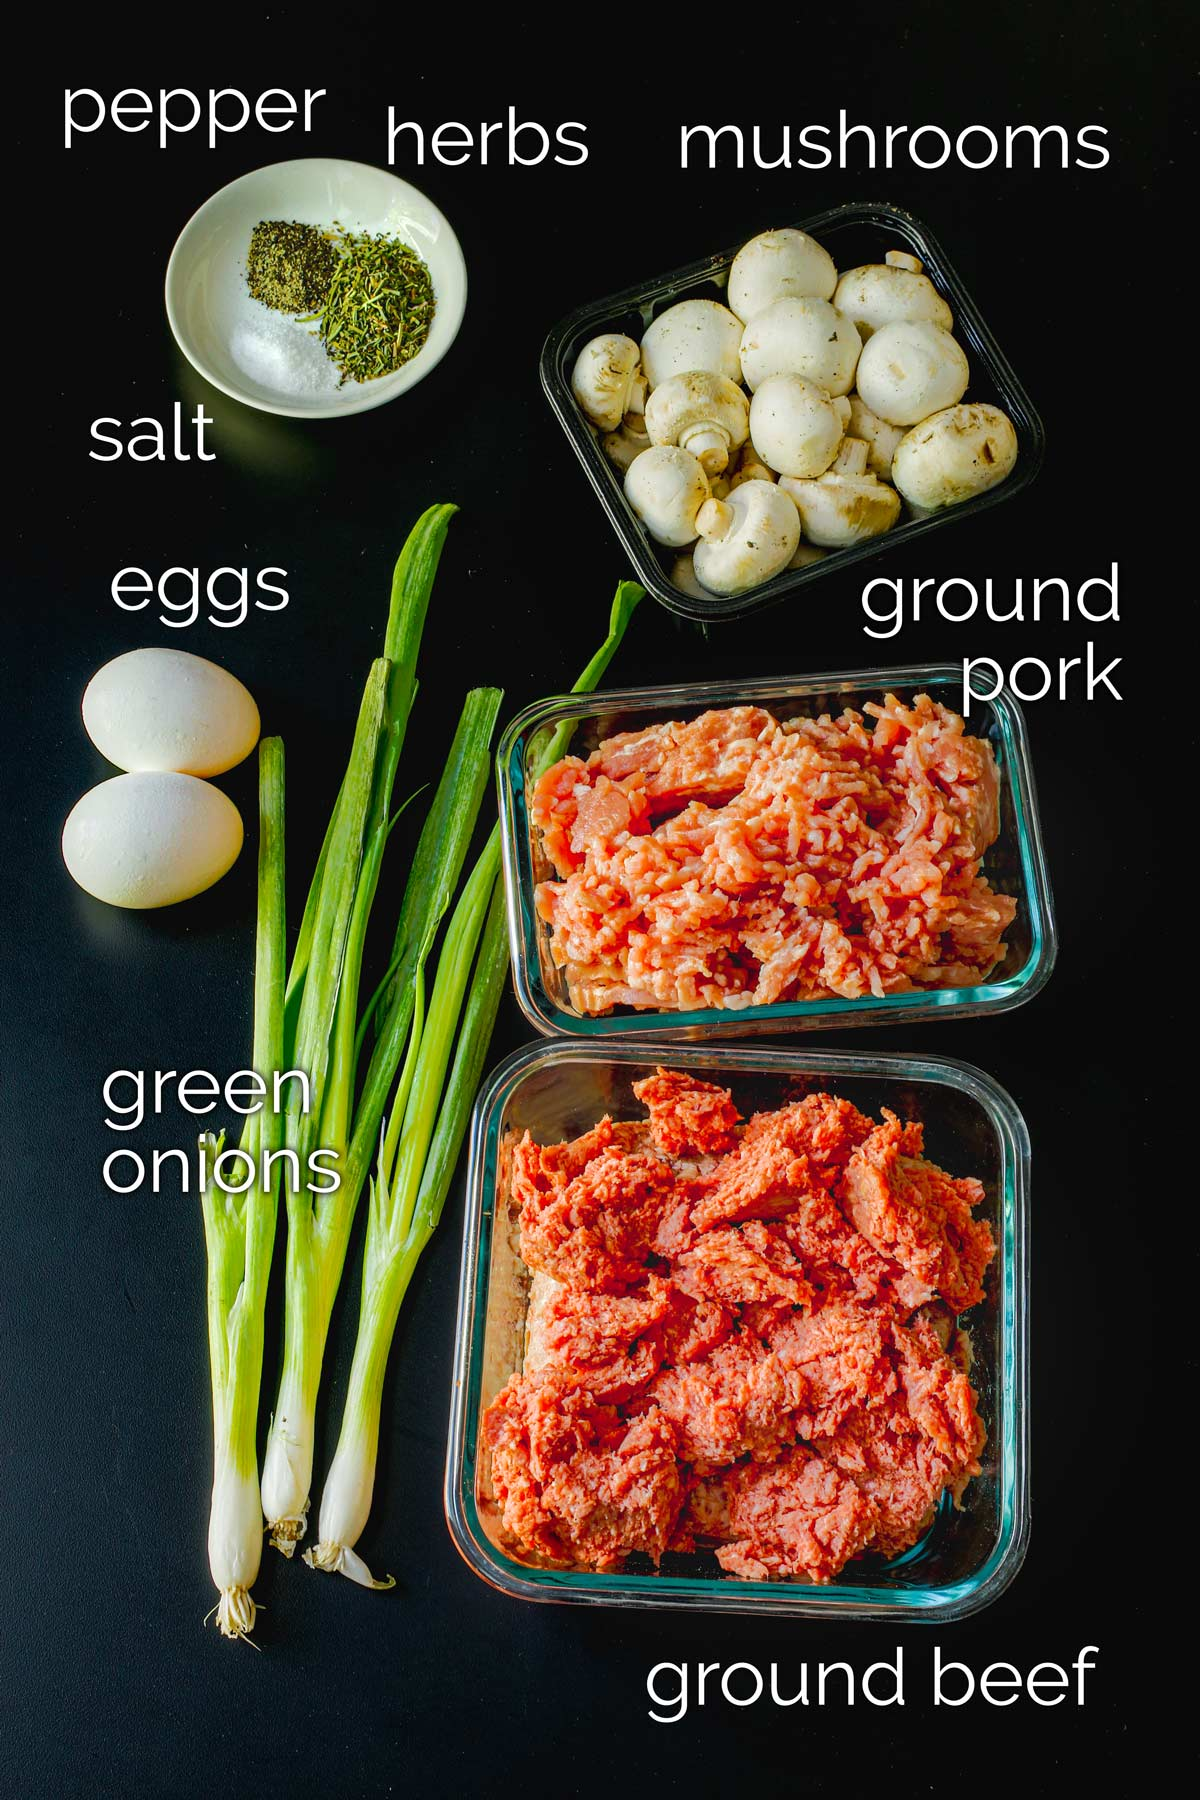 ingredients for gluten-free meatballs laid out on a black table top.